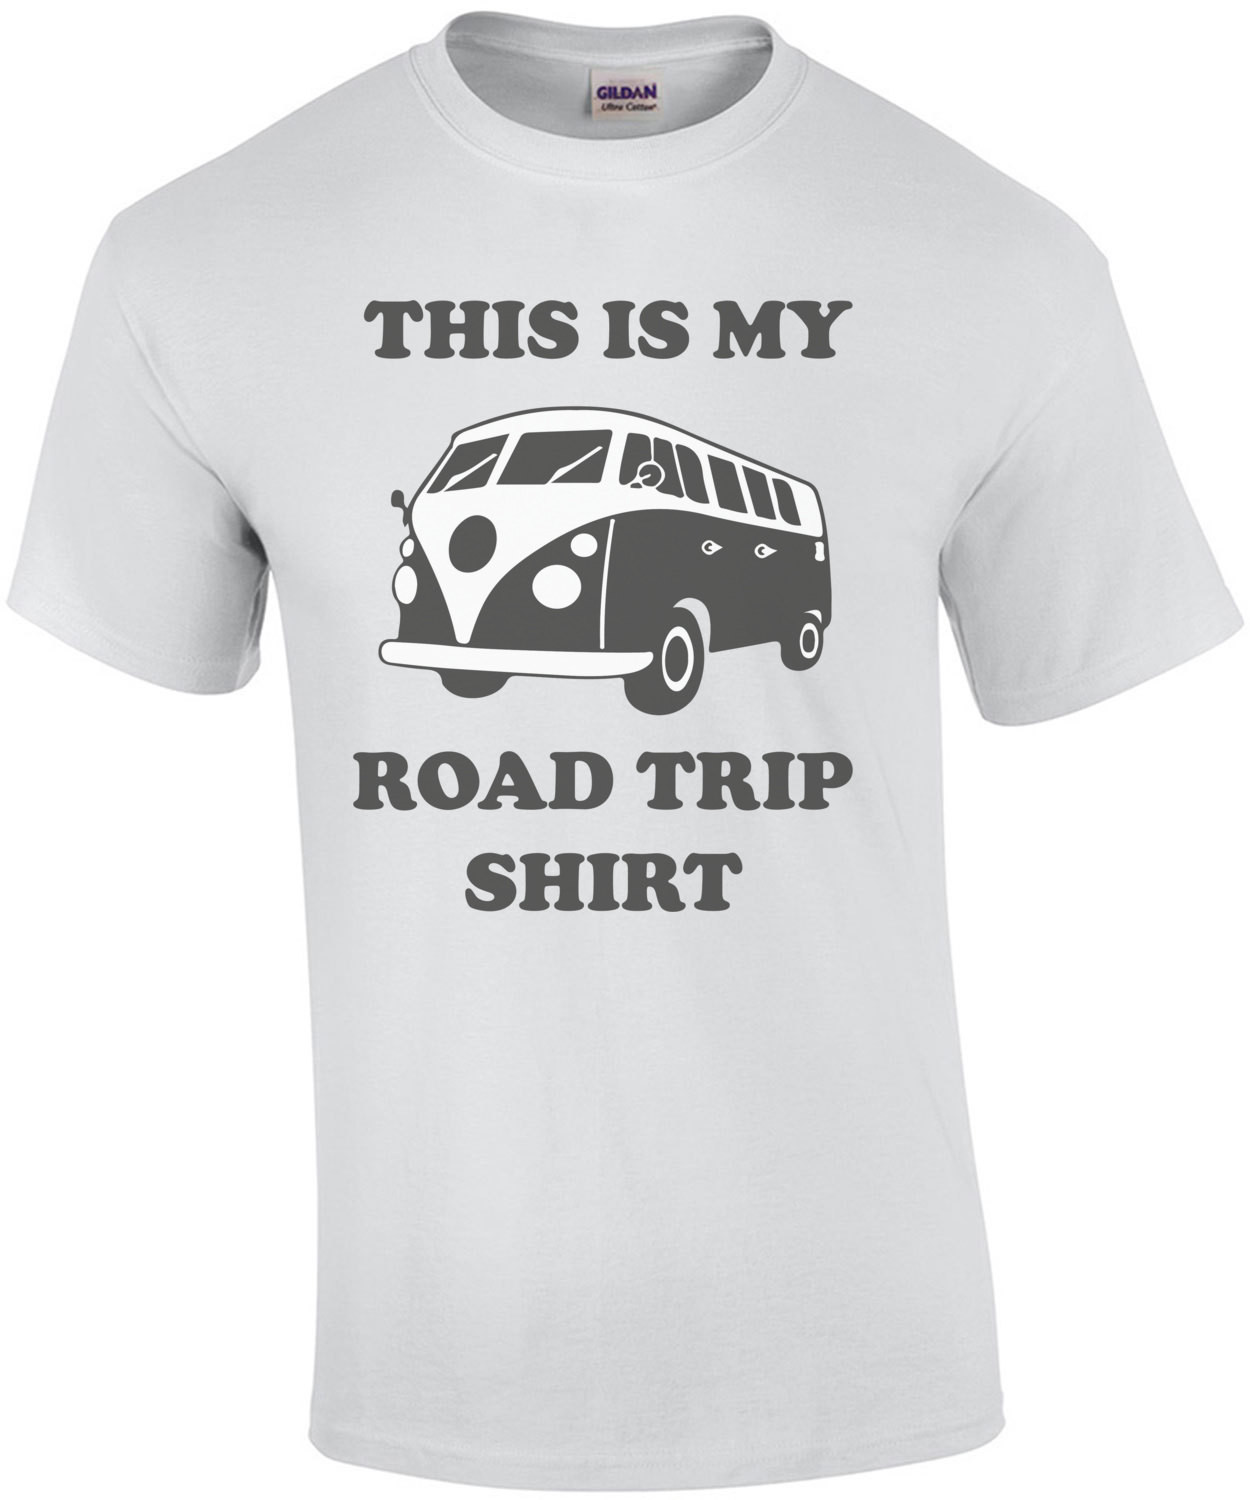 This is my road trip shirt 2.  RV Road Trip T-Shirt